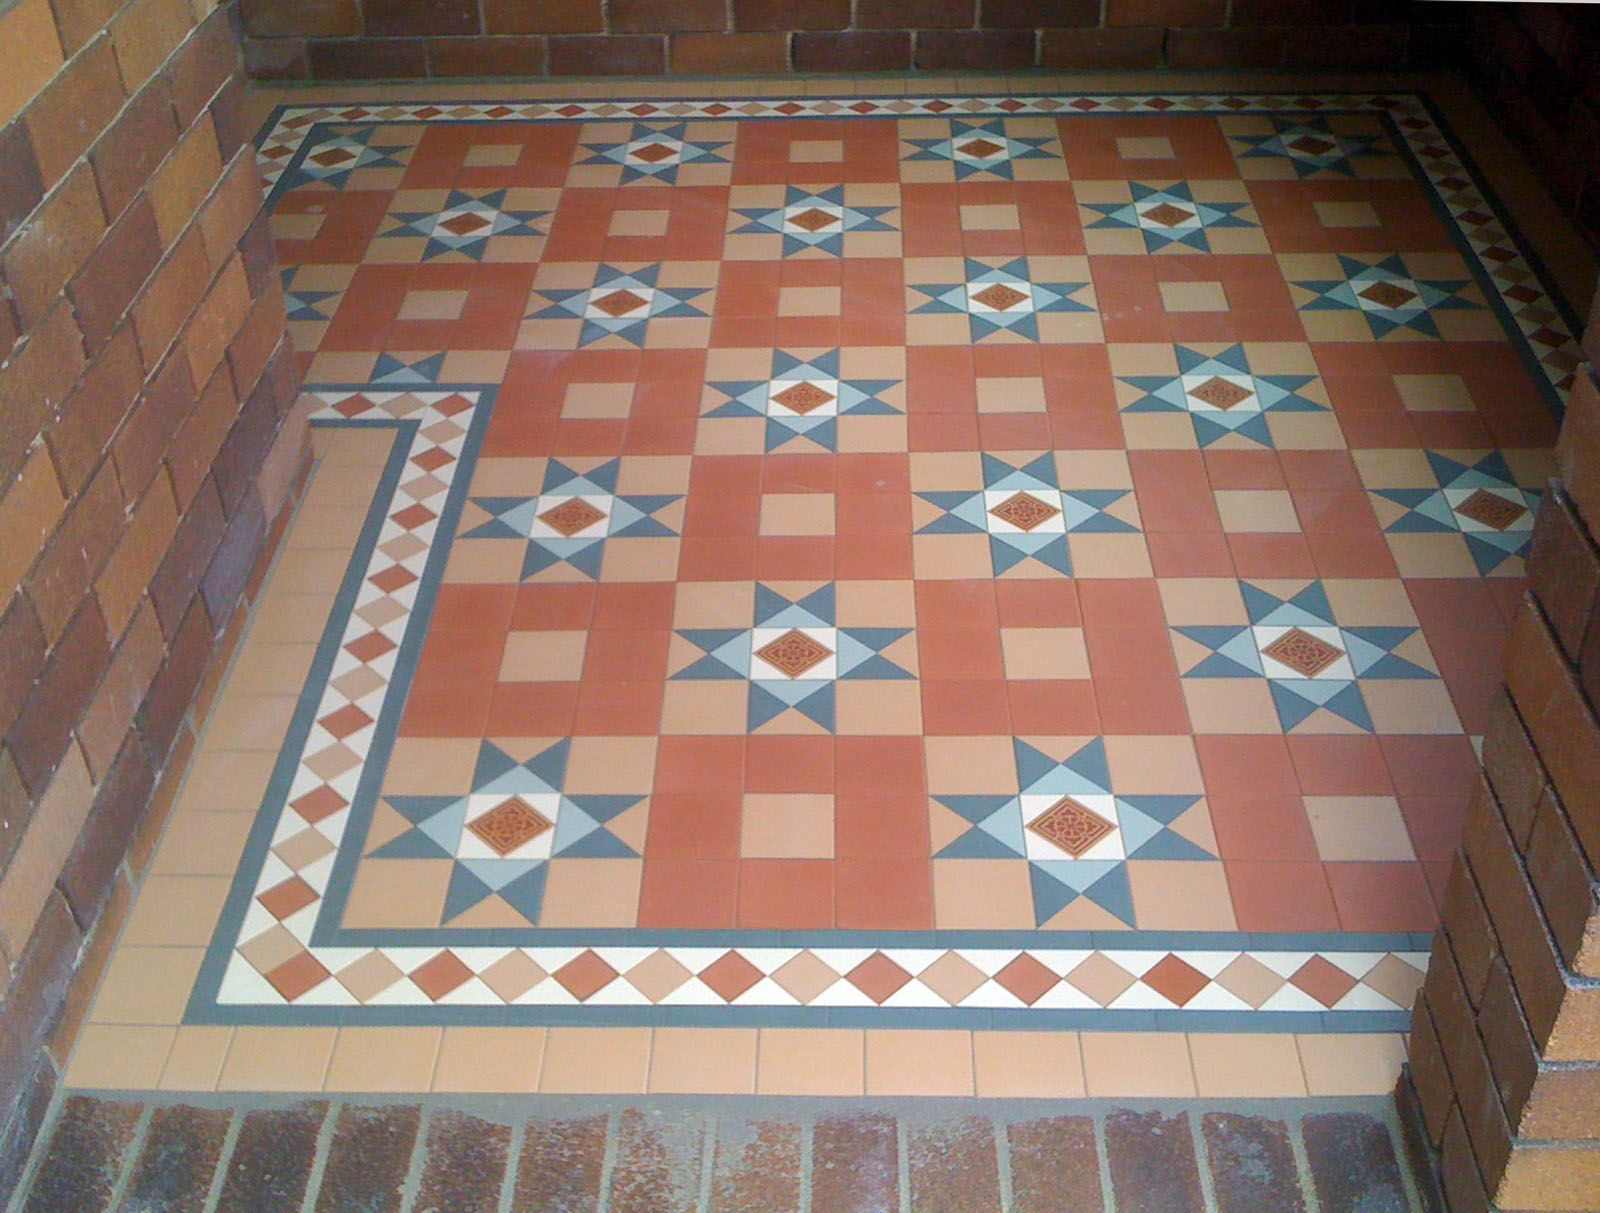 Pin by tessellated tile factory on tessellated tiles verandahs find this pin and more on tessellated tiles verandahs by tessellatedtile dailygadgetfo Images